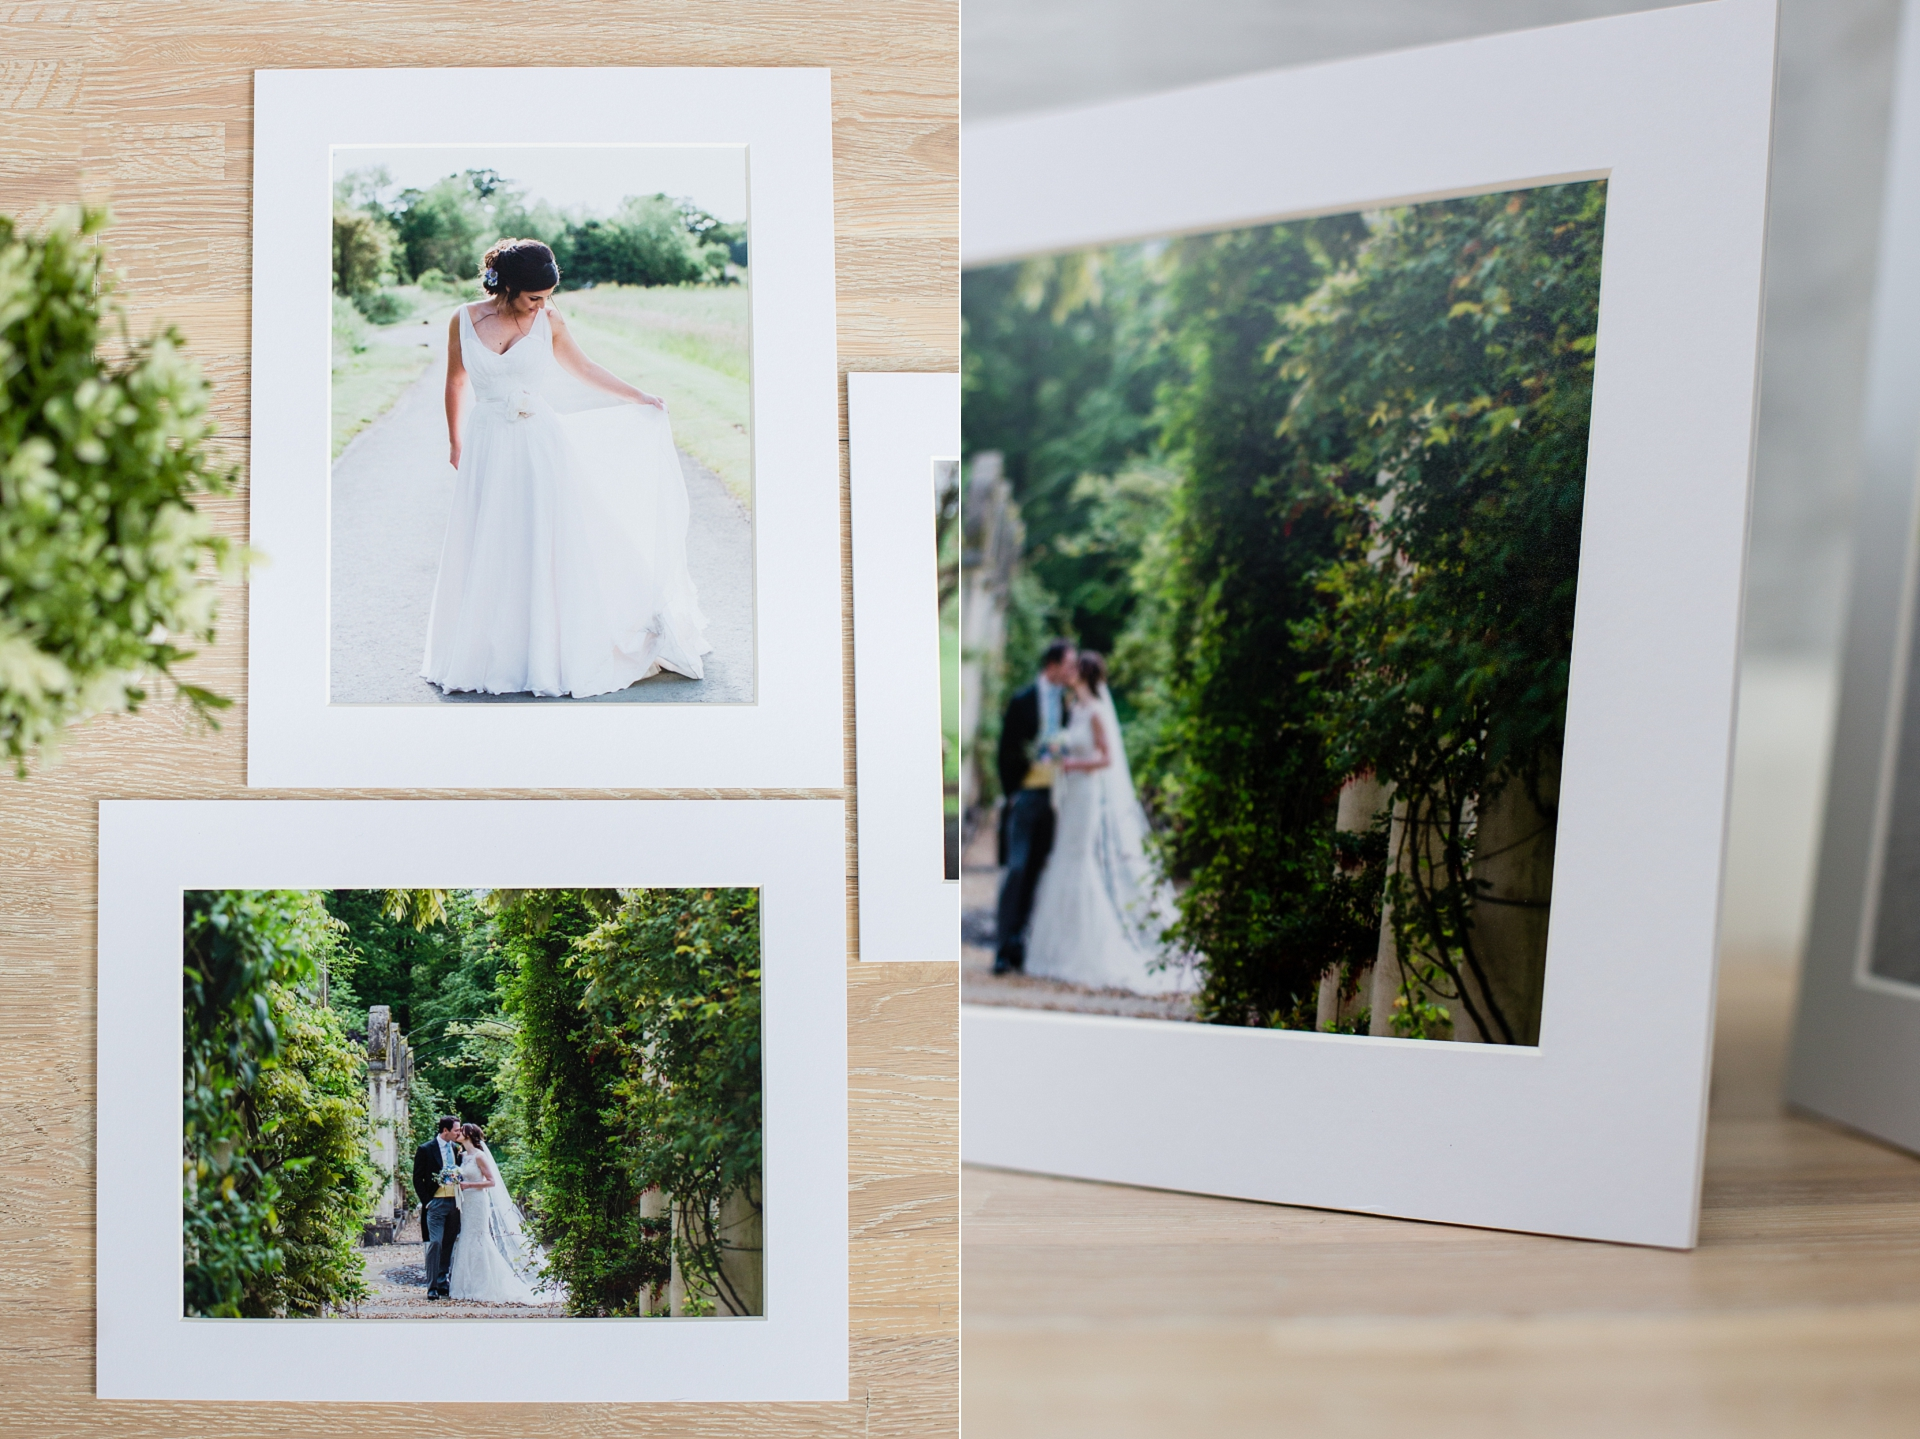 We print our photos